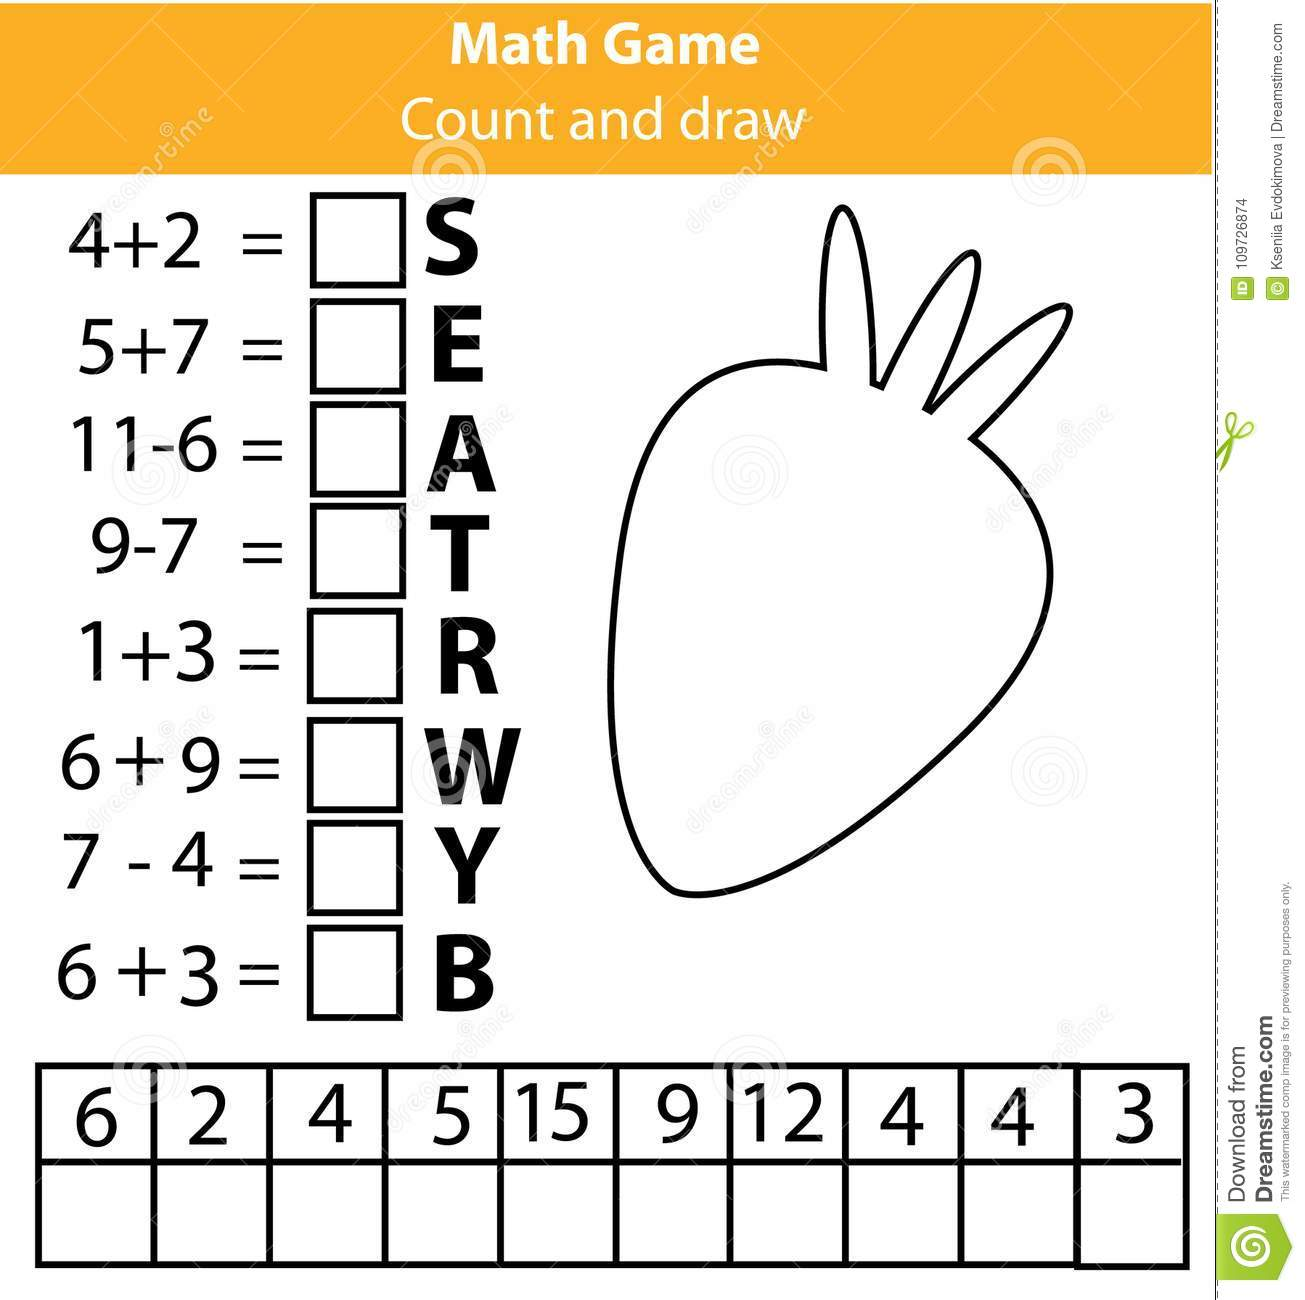 Words Puzzle Children Educational Game With Mathematics Equations Counting And Letters Game